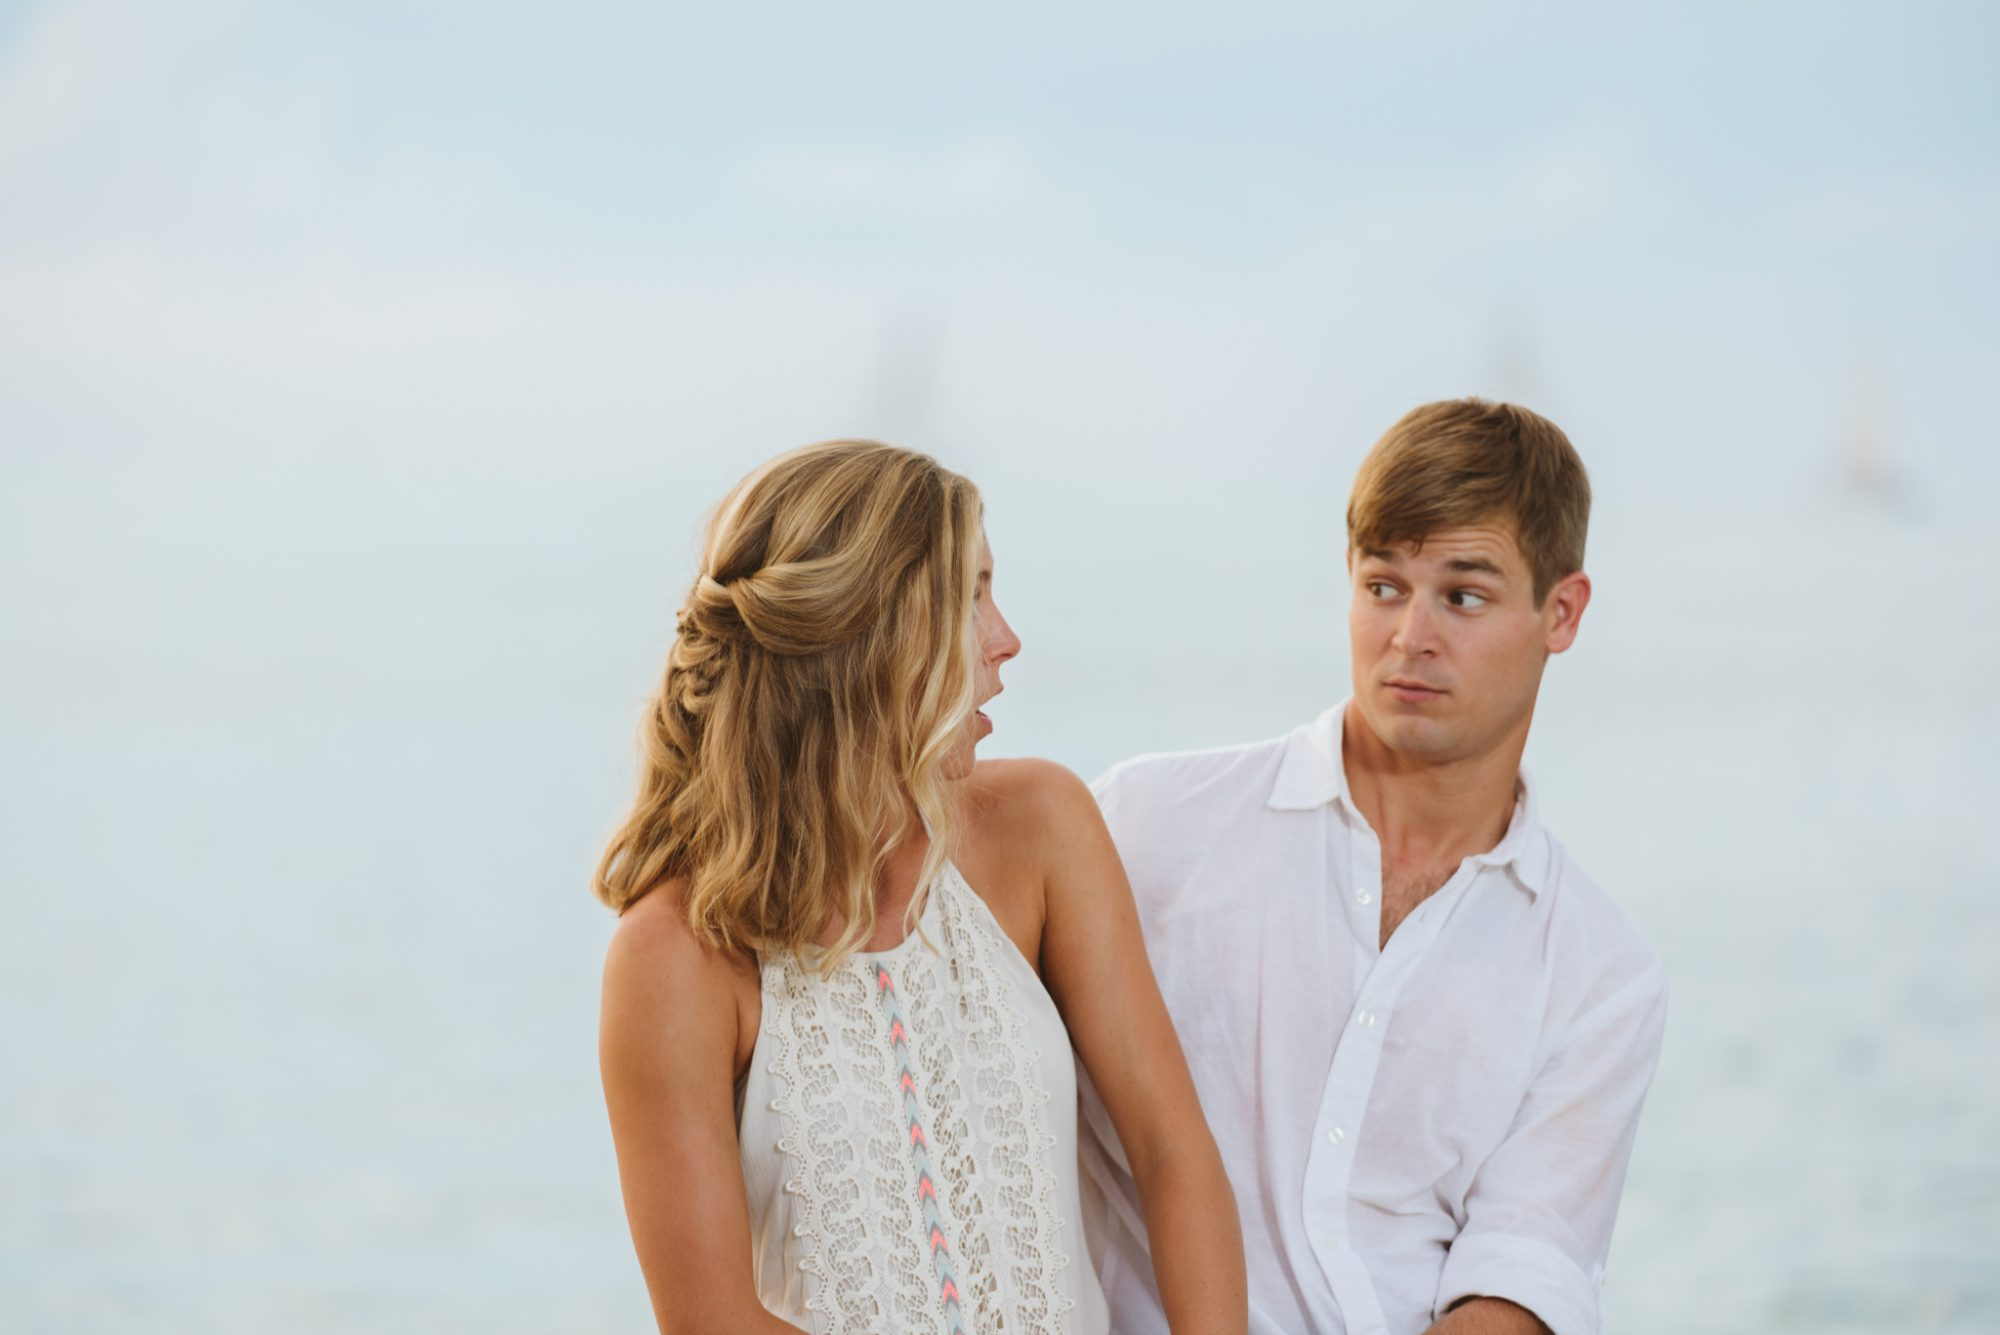 Shelby Jake Engagement Photos 42 - Shelby & Jake - Key West Wedding Photographer - Fort Zachary Taylor